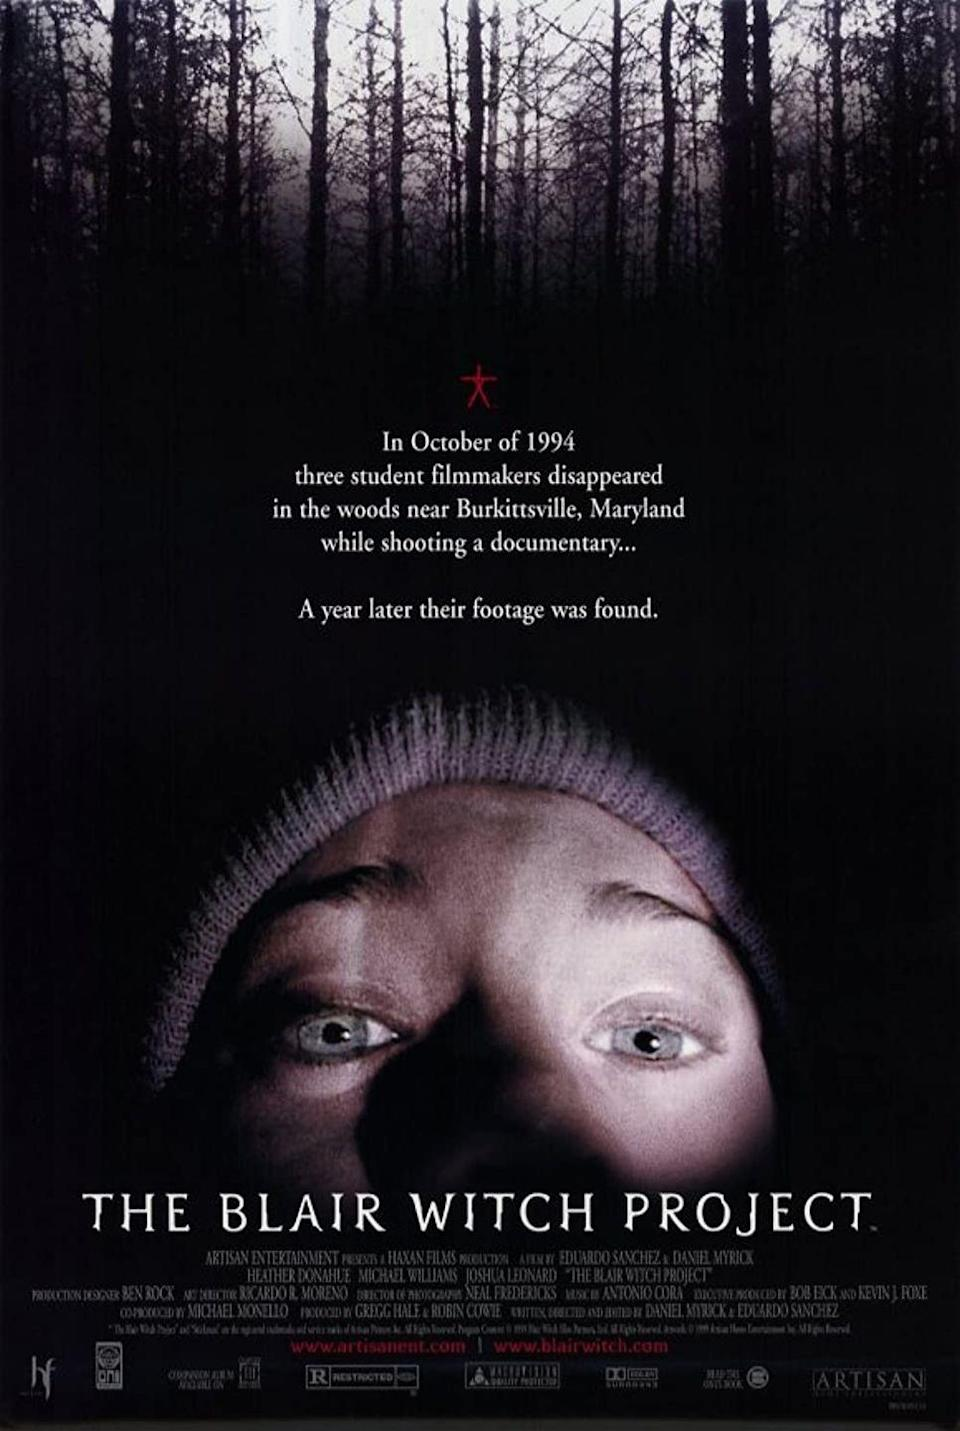 """<p>Do you remember how much buzz swirled around this film when it came out in 1999? People hadn't seen anything like the shaky, handheld camera work meant to feel authentically like the terrifying filmic experience of three students who vanish after heading into the forest to film a documentary on a local witch legend.</p><p><a class=""""link rapid-noclick-resp"""" href=""""https://go.redirectingat.com?id=74968X1596630&url=https%3A%2F%2Fwww.hulu.com%2Fmovie%2Fthe-blair-witch-project-e5307026-7b10-4359-a60d-0101624fb9ec&sref=https%3A%2F%2Fwww.womansday.com%2Flife%2Fentertainment%2Fg37360837%2Fbest-witch-movies%2F"""" rel=""""nofollow noopener"""" target=""""_blank"""" data-ylk=""""slk:WATCH NOW"""">WATCH NOW</a></p>"""